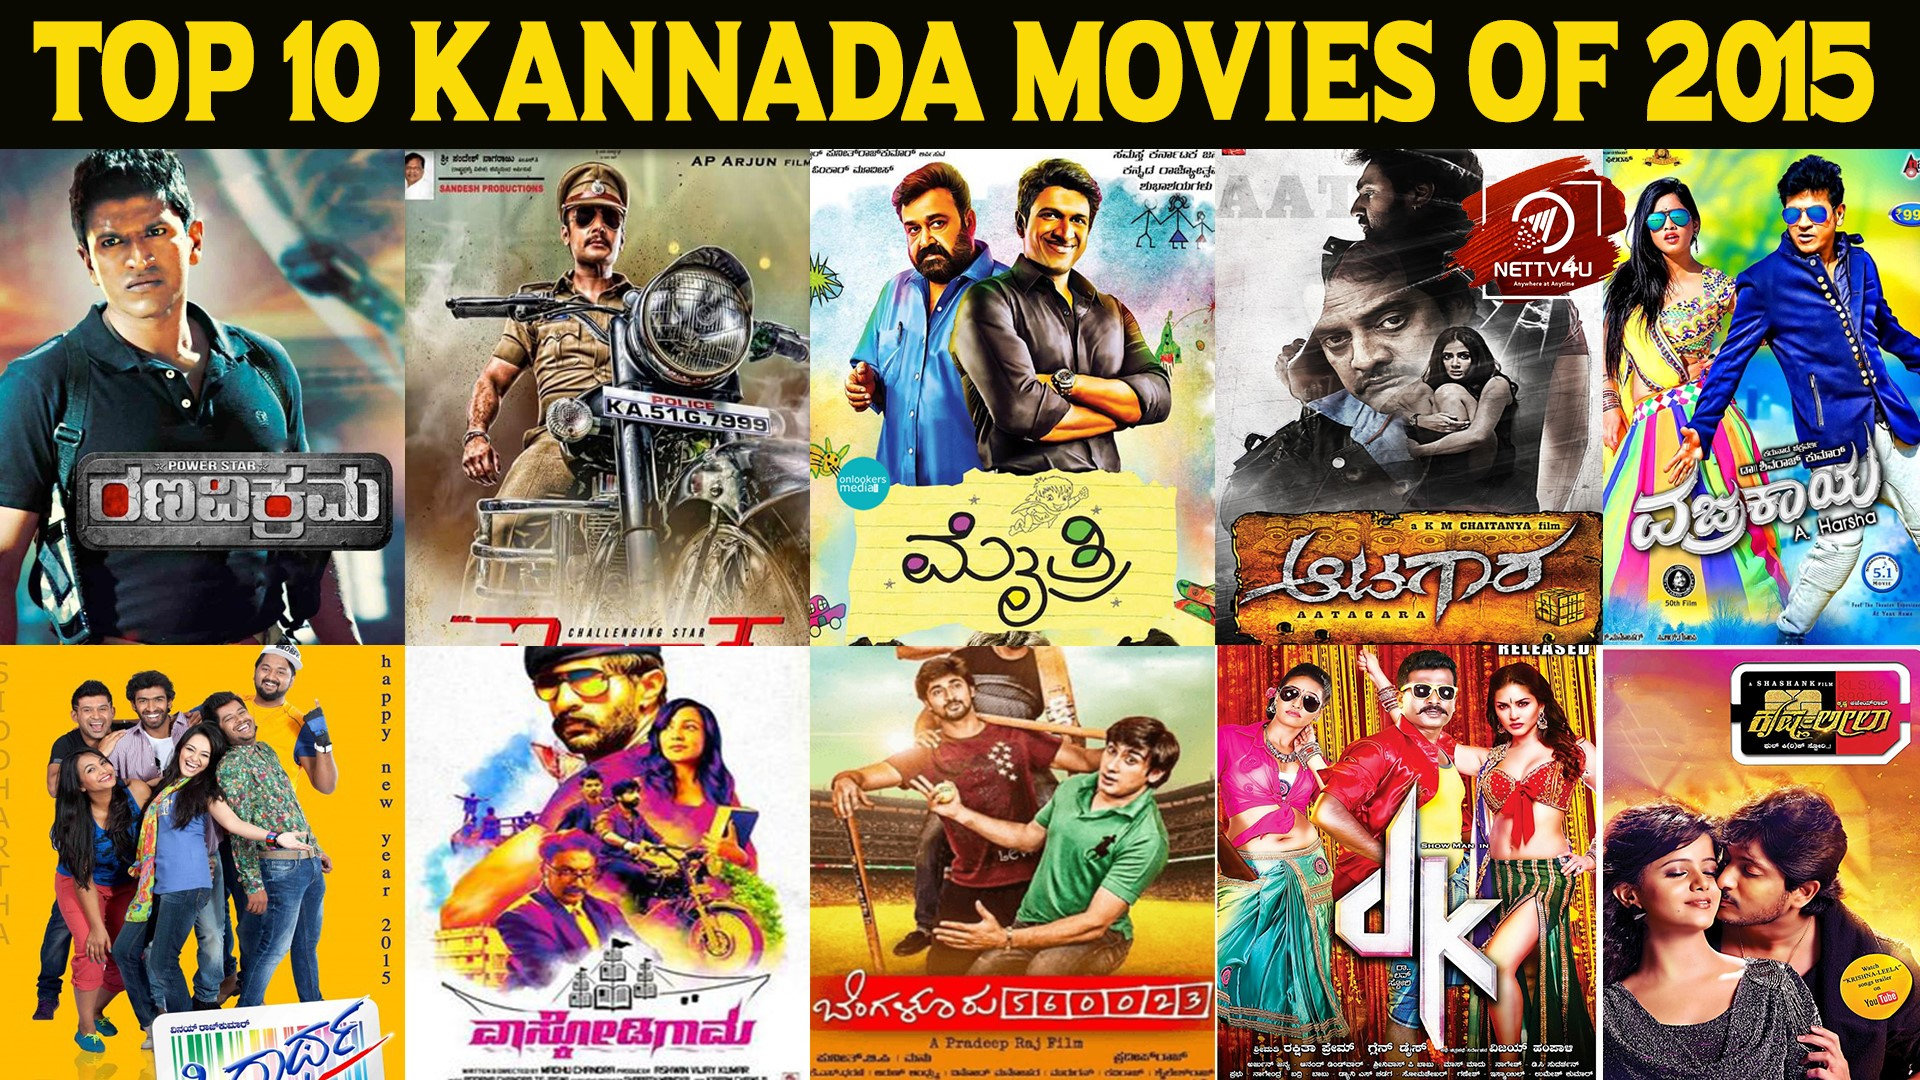 Top 10 Kannada Movies Of 2015